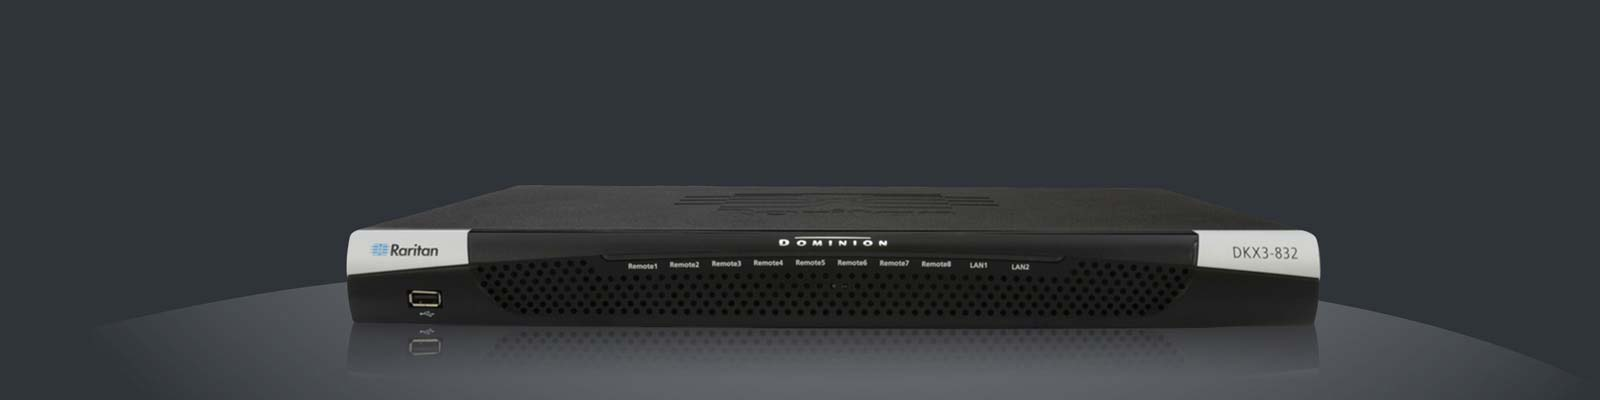 Raritan Dominion DKX3 4 User, 16 Port, 32 Port or 42 Port CAT5 KVM Over IP Switch